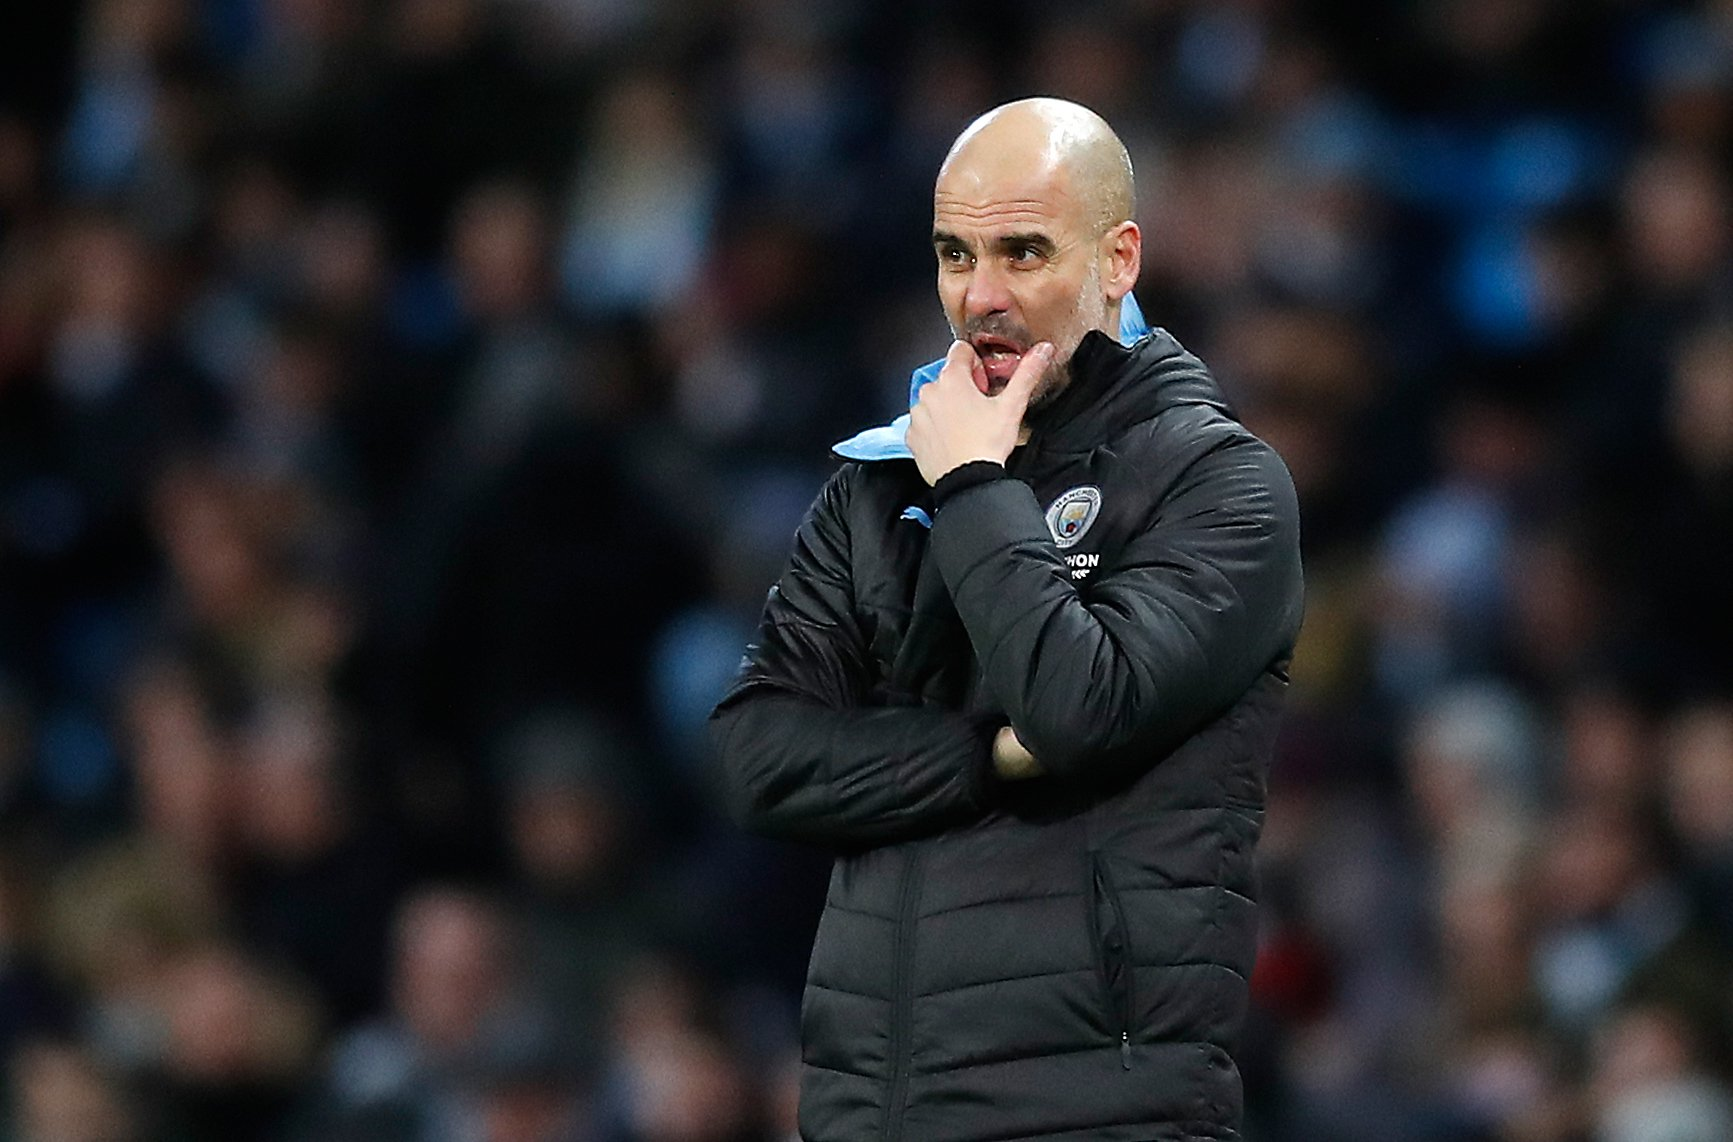 City ready to give everything in bid for Champions League glory – Pep Guardiola